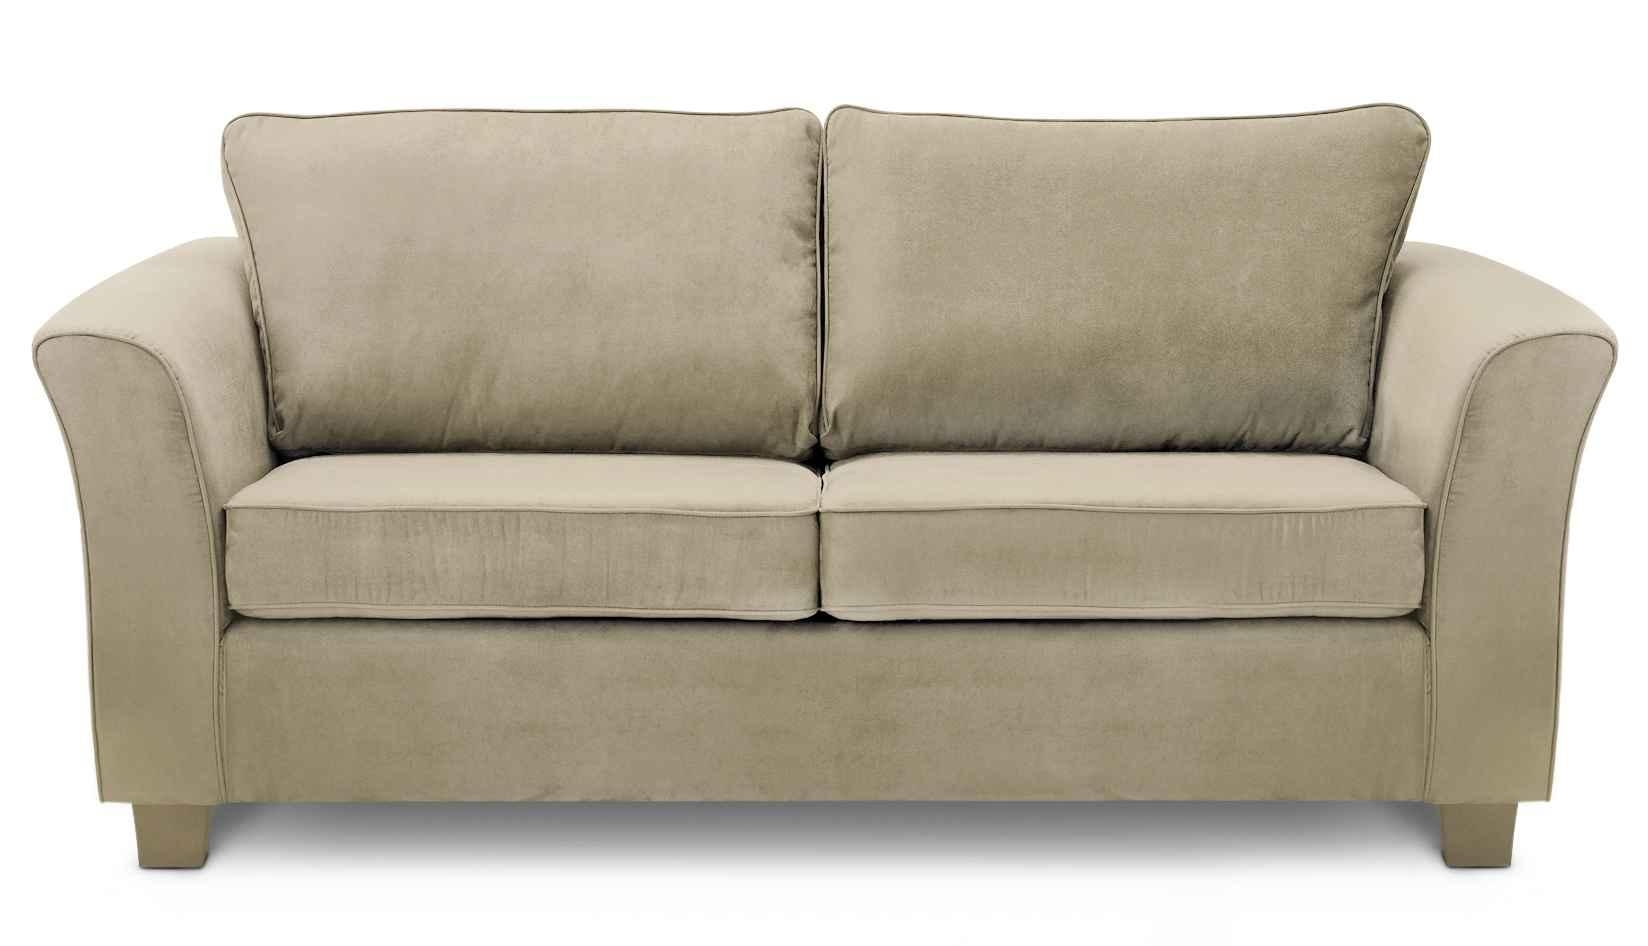 Cheap Sofas And Couches And Cheap Sofa Furniture : Cheap Sofa Intended For Cheap Sofa Chairs (View 10 of 20)